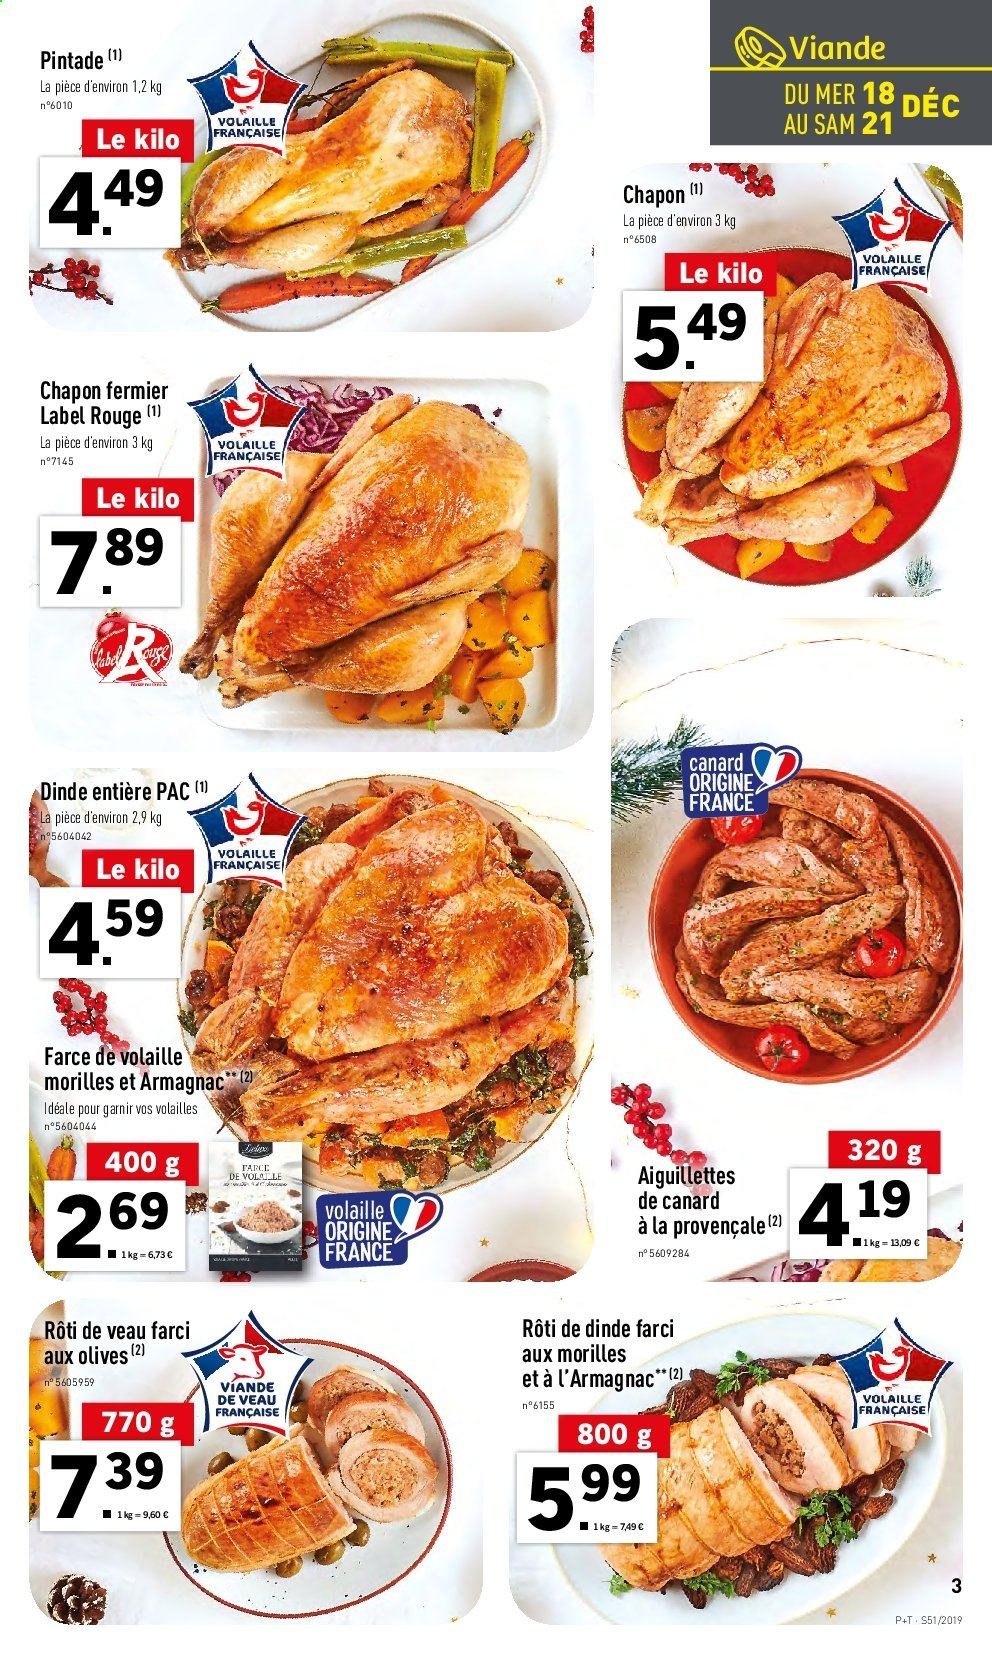 Catalogue Lidl - 18.12.2019 - 24.12.2019. Page 3.